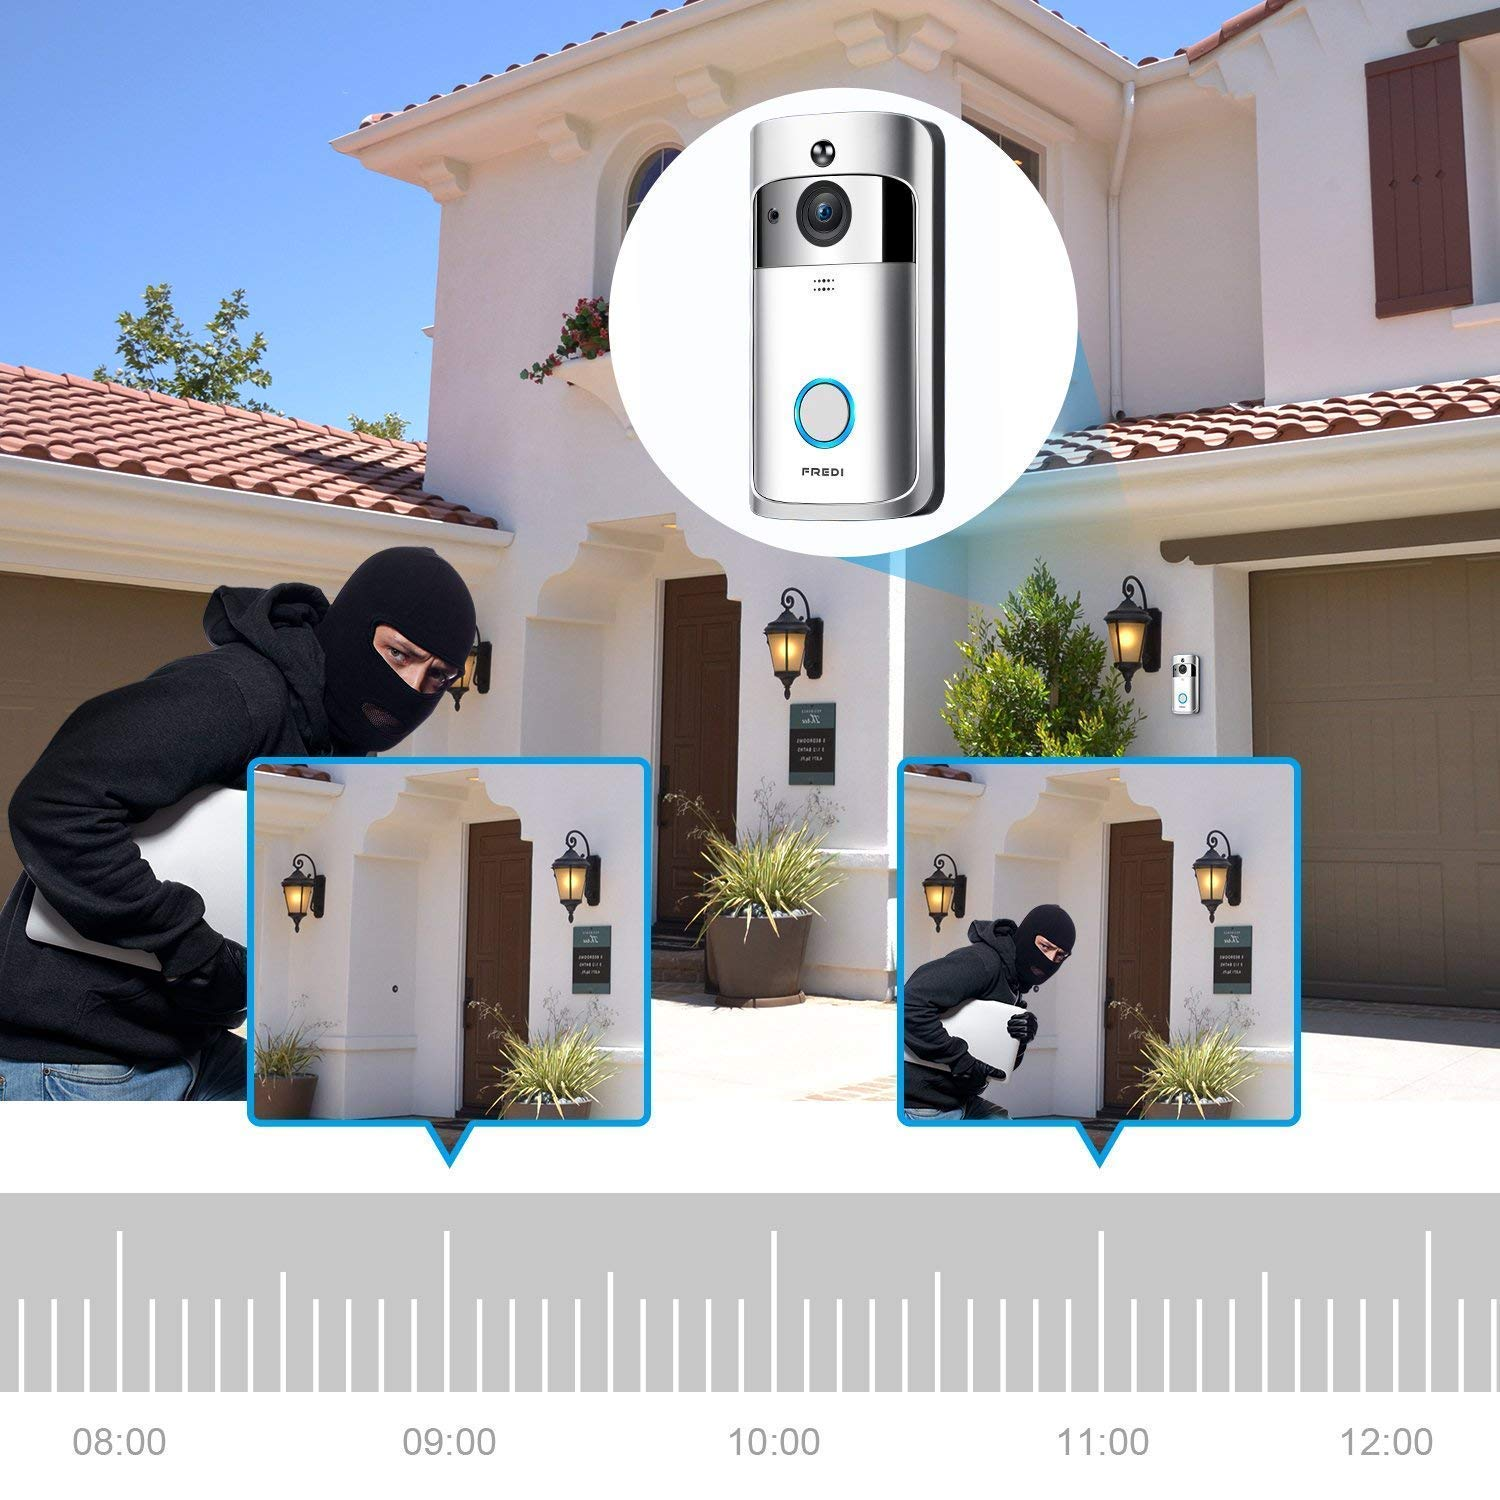 Two-Way Talk Night Vision Wireless Video Doorbell with LED Ring Button HD WiFi Camera with Real-time Video 6 Months Work SD Card iOS Android,Powered by AC /& DC /& Battery PIR Motion Detection KuDiff